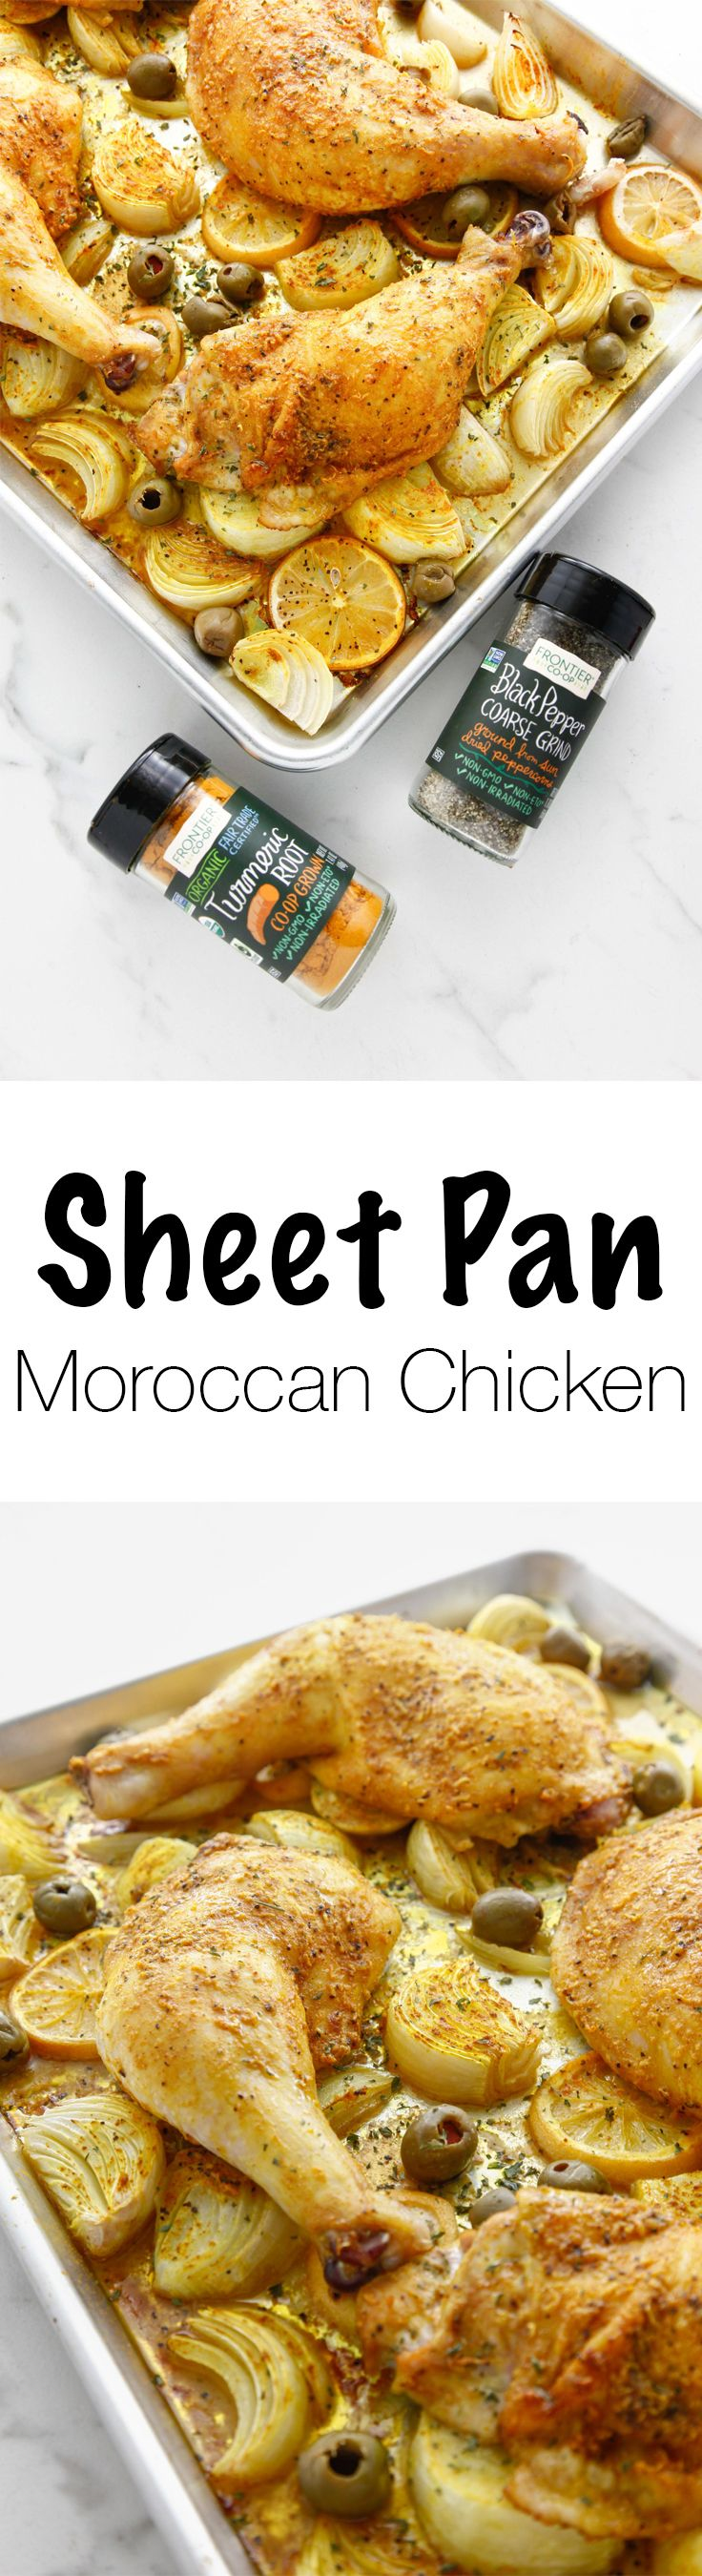 Sheet Pan Moroccan Chicken via @thebrooklyncook